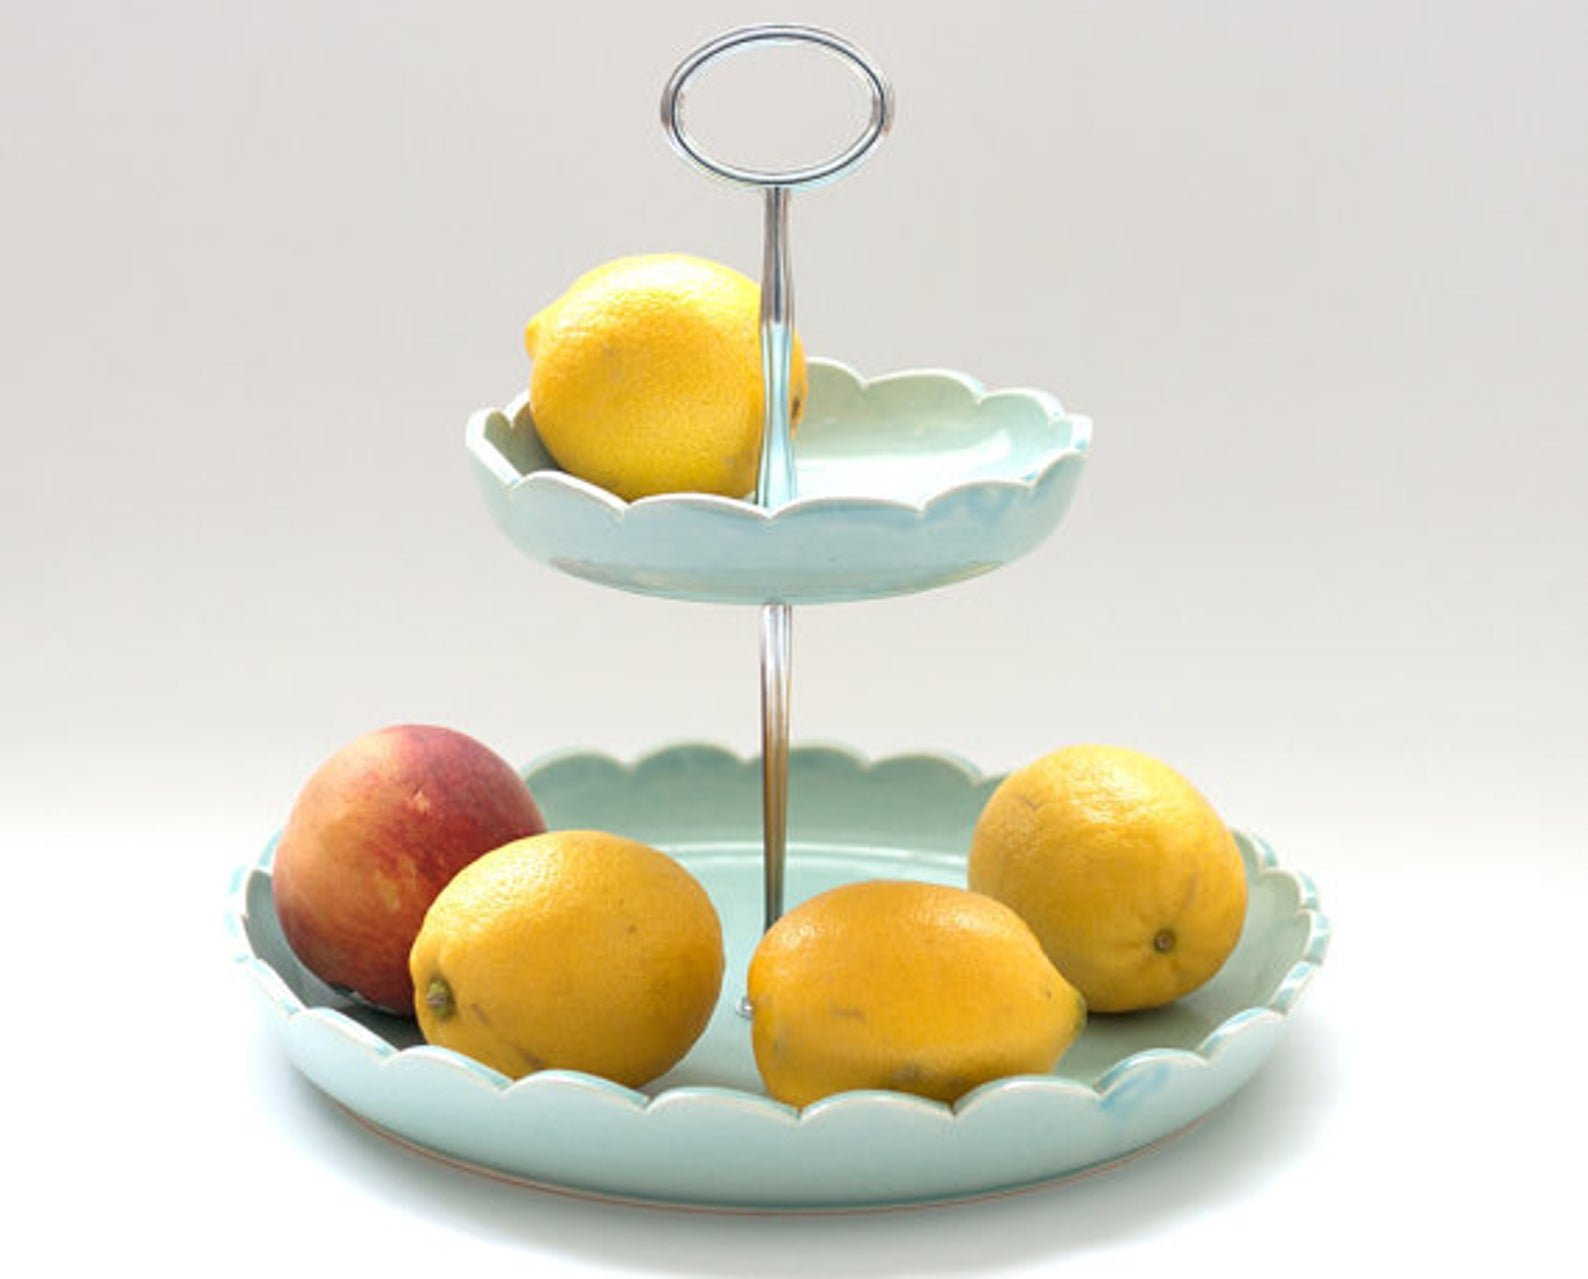 blue two tiered fruit basket with lemons and apple in it